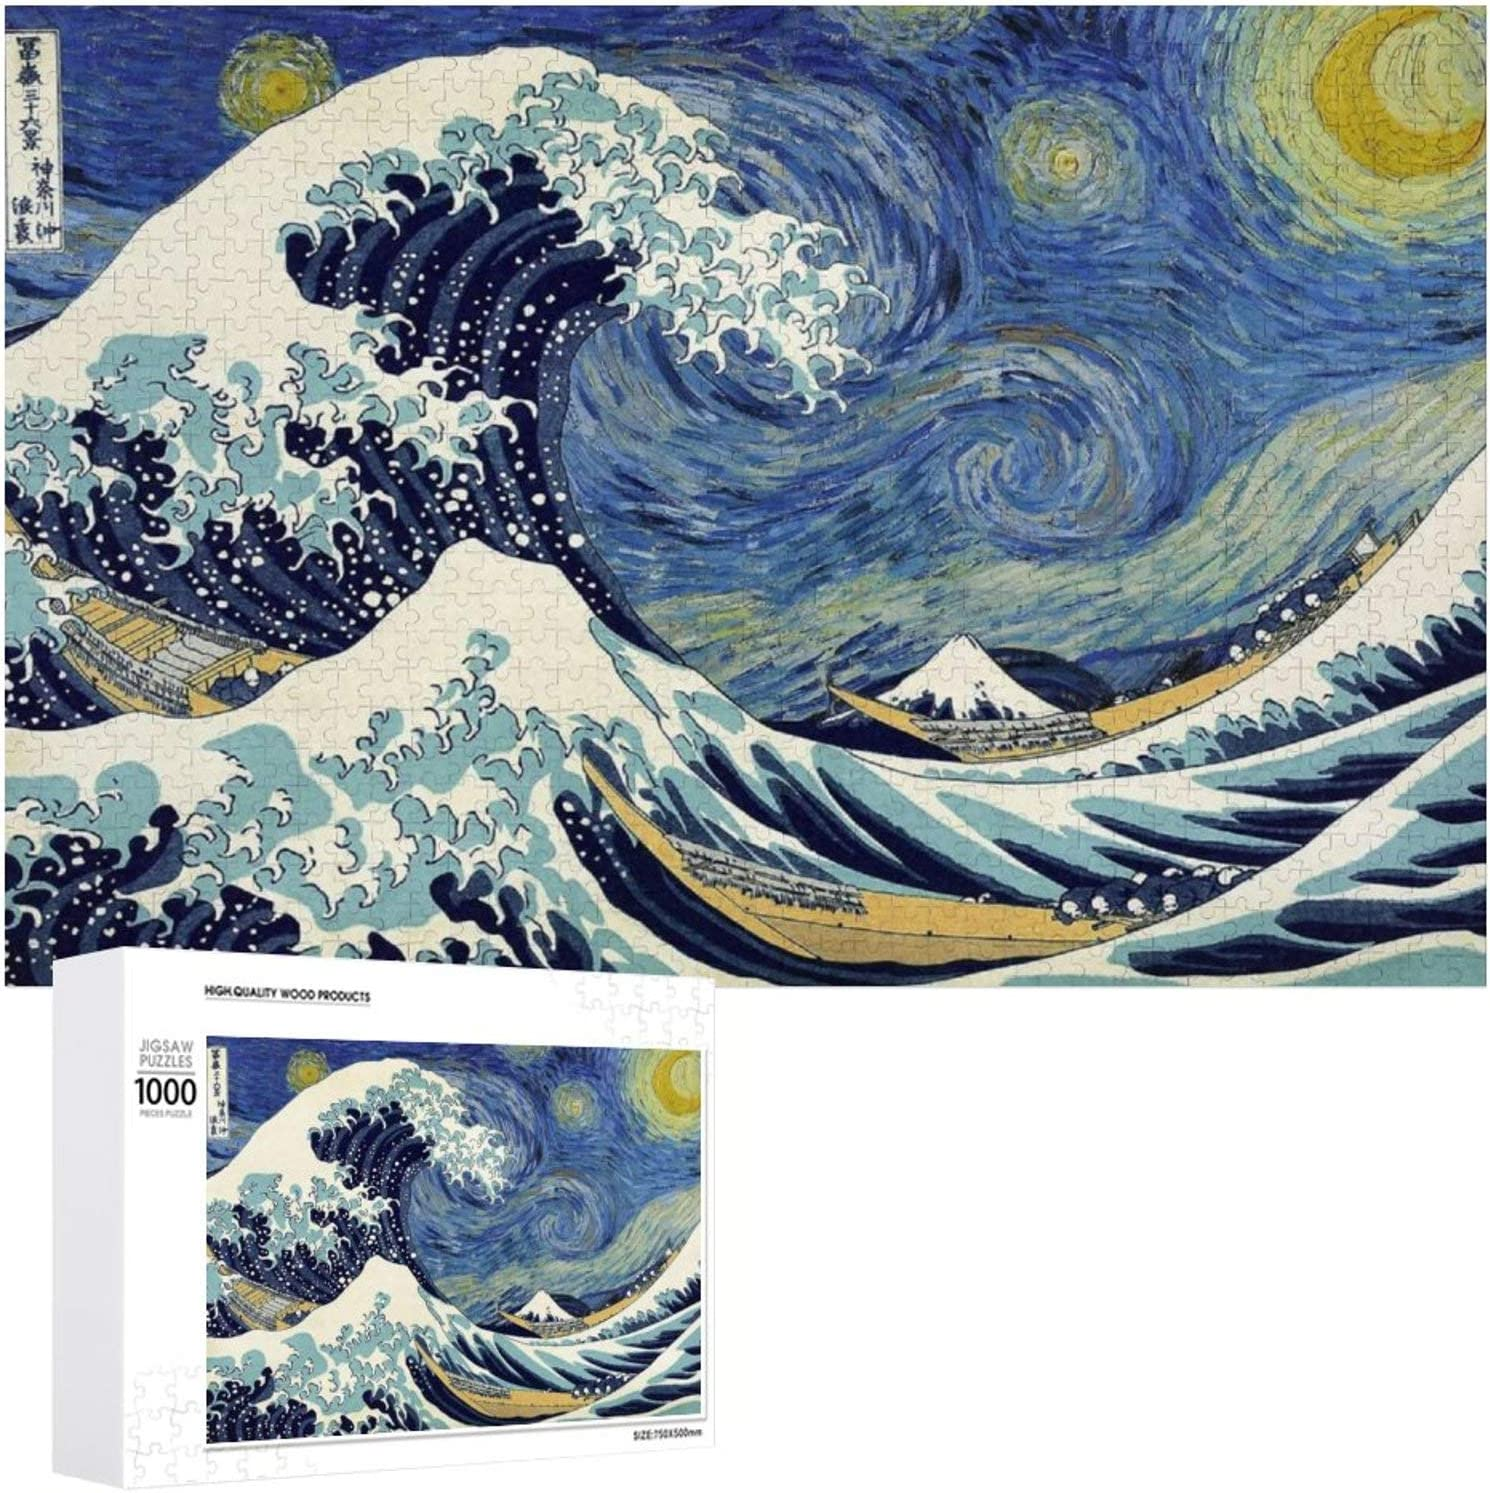 Wooden Jigsaw Puzzles Difficult 500/1000 Pieces,Great Wave of Kanagawa,Starry Night Great Wave,Cute Cartoon Anime Game Entertainment DIY Toys Creative Gift Home Decor for Adult and Kids,Boys,Girls